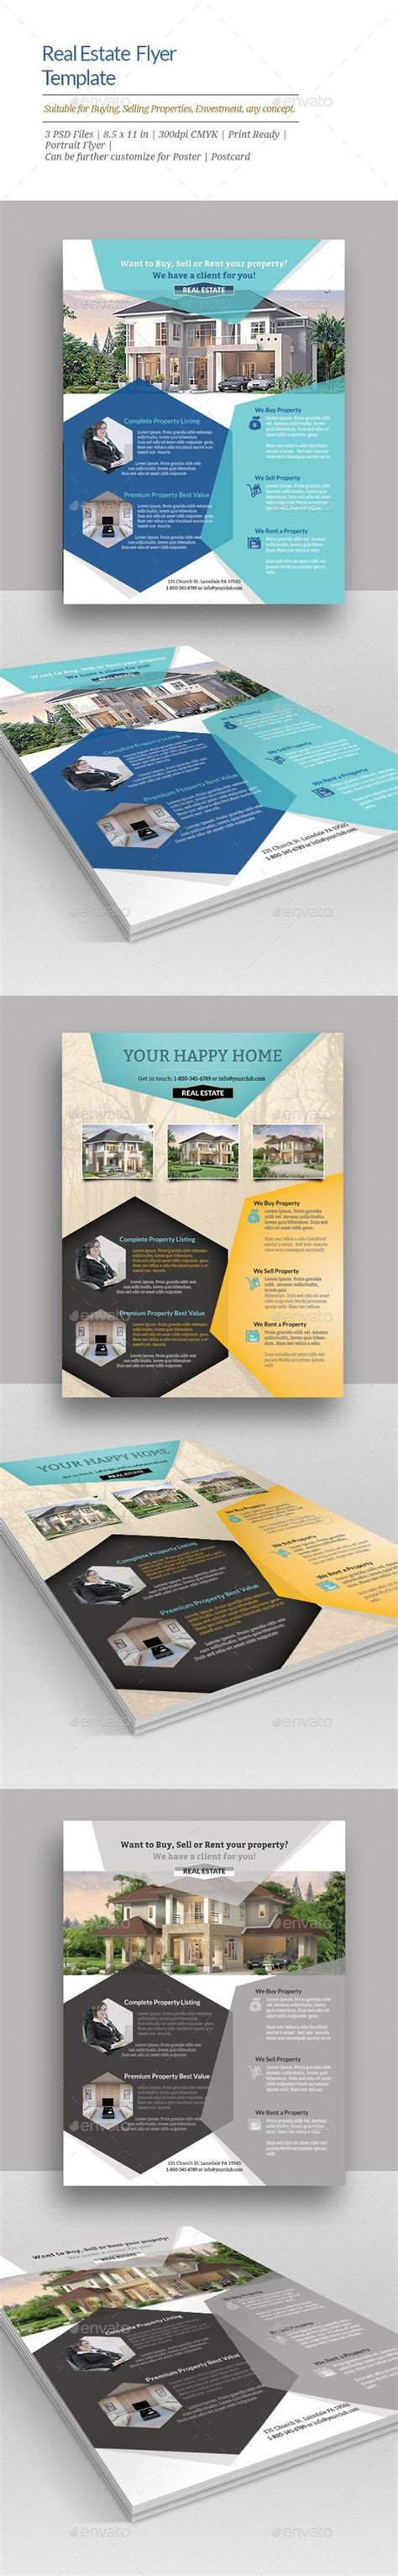 Real Estate Flyer Templates Flyer Template Real Estate Flyers And Flyers Real Estate Marketing Caign Template